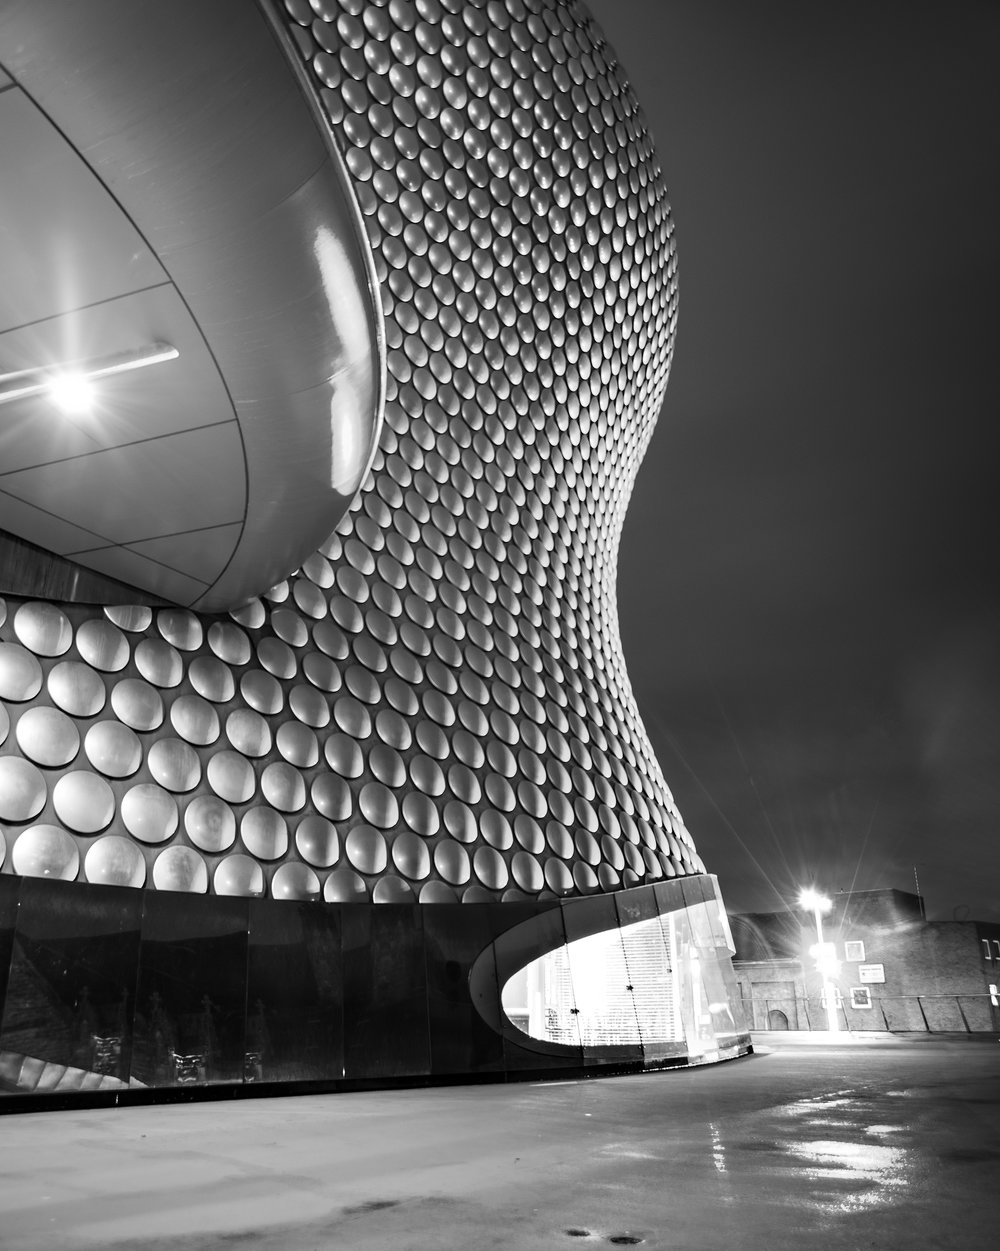 Selfridges Department Store I, Birmingham, U.K. Nikon D800 - 17-35mm f/3.5-4.5 (DX Lens, no money at that time).   The first version of this image was a questionable HDR that looked like if the mall was radioactive!